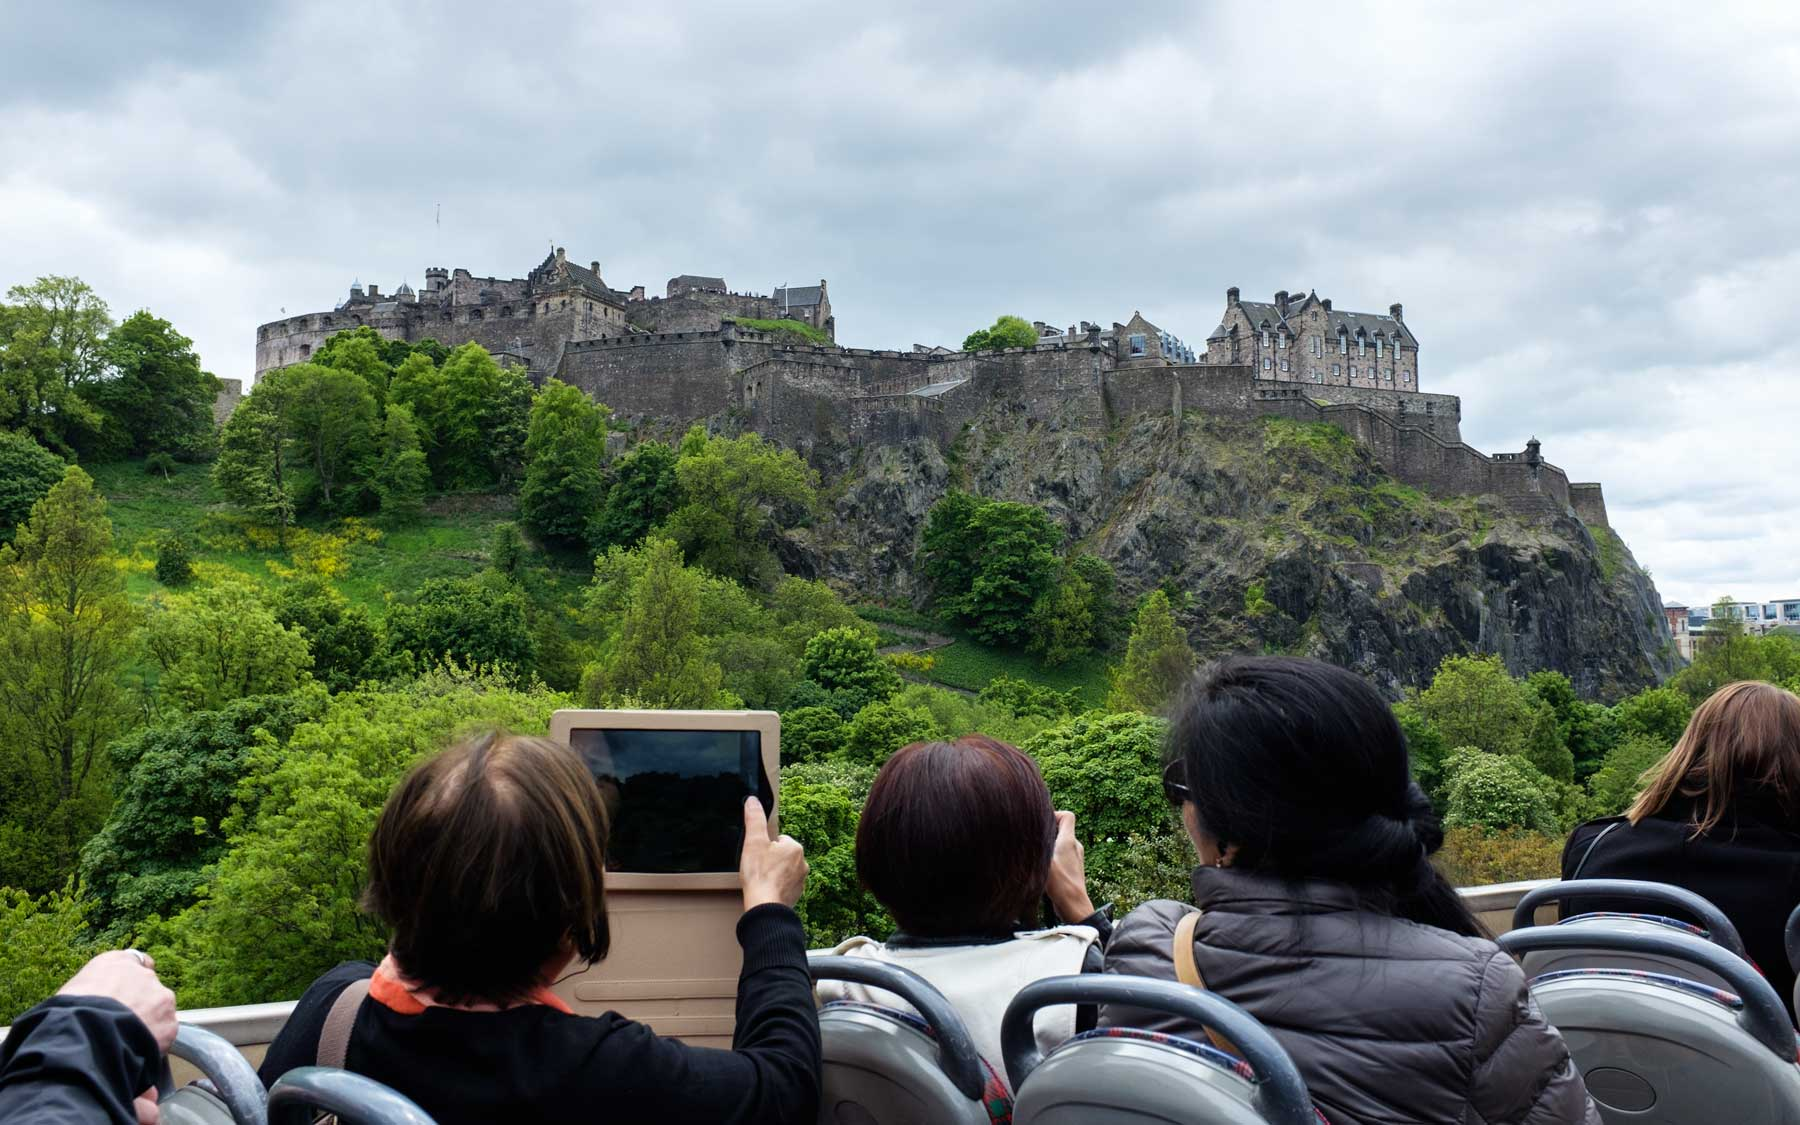 Photos of Edinburgh Castle are taken from the top of a double decker bus as it travels down Princes St.